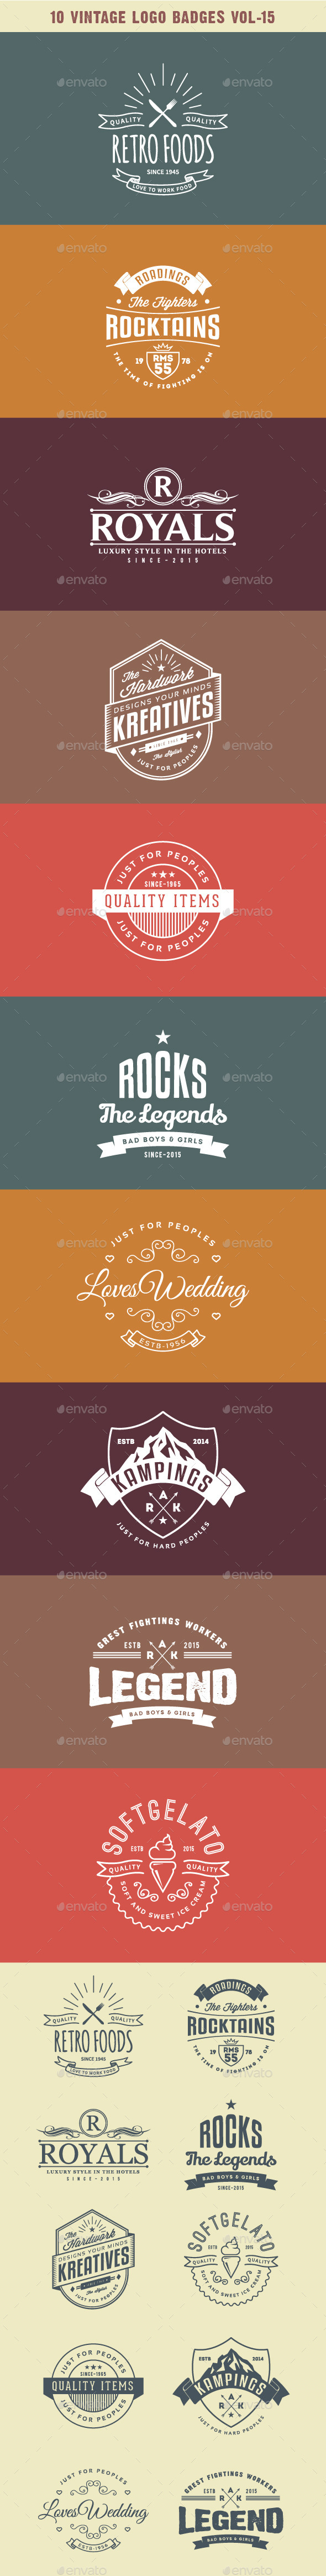 GraphicRiver 10 Vintage Logo Badges Vol-15 10646510